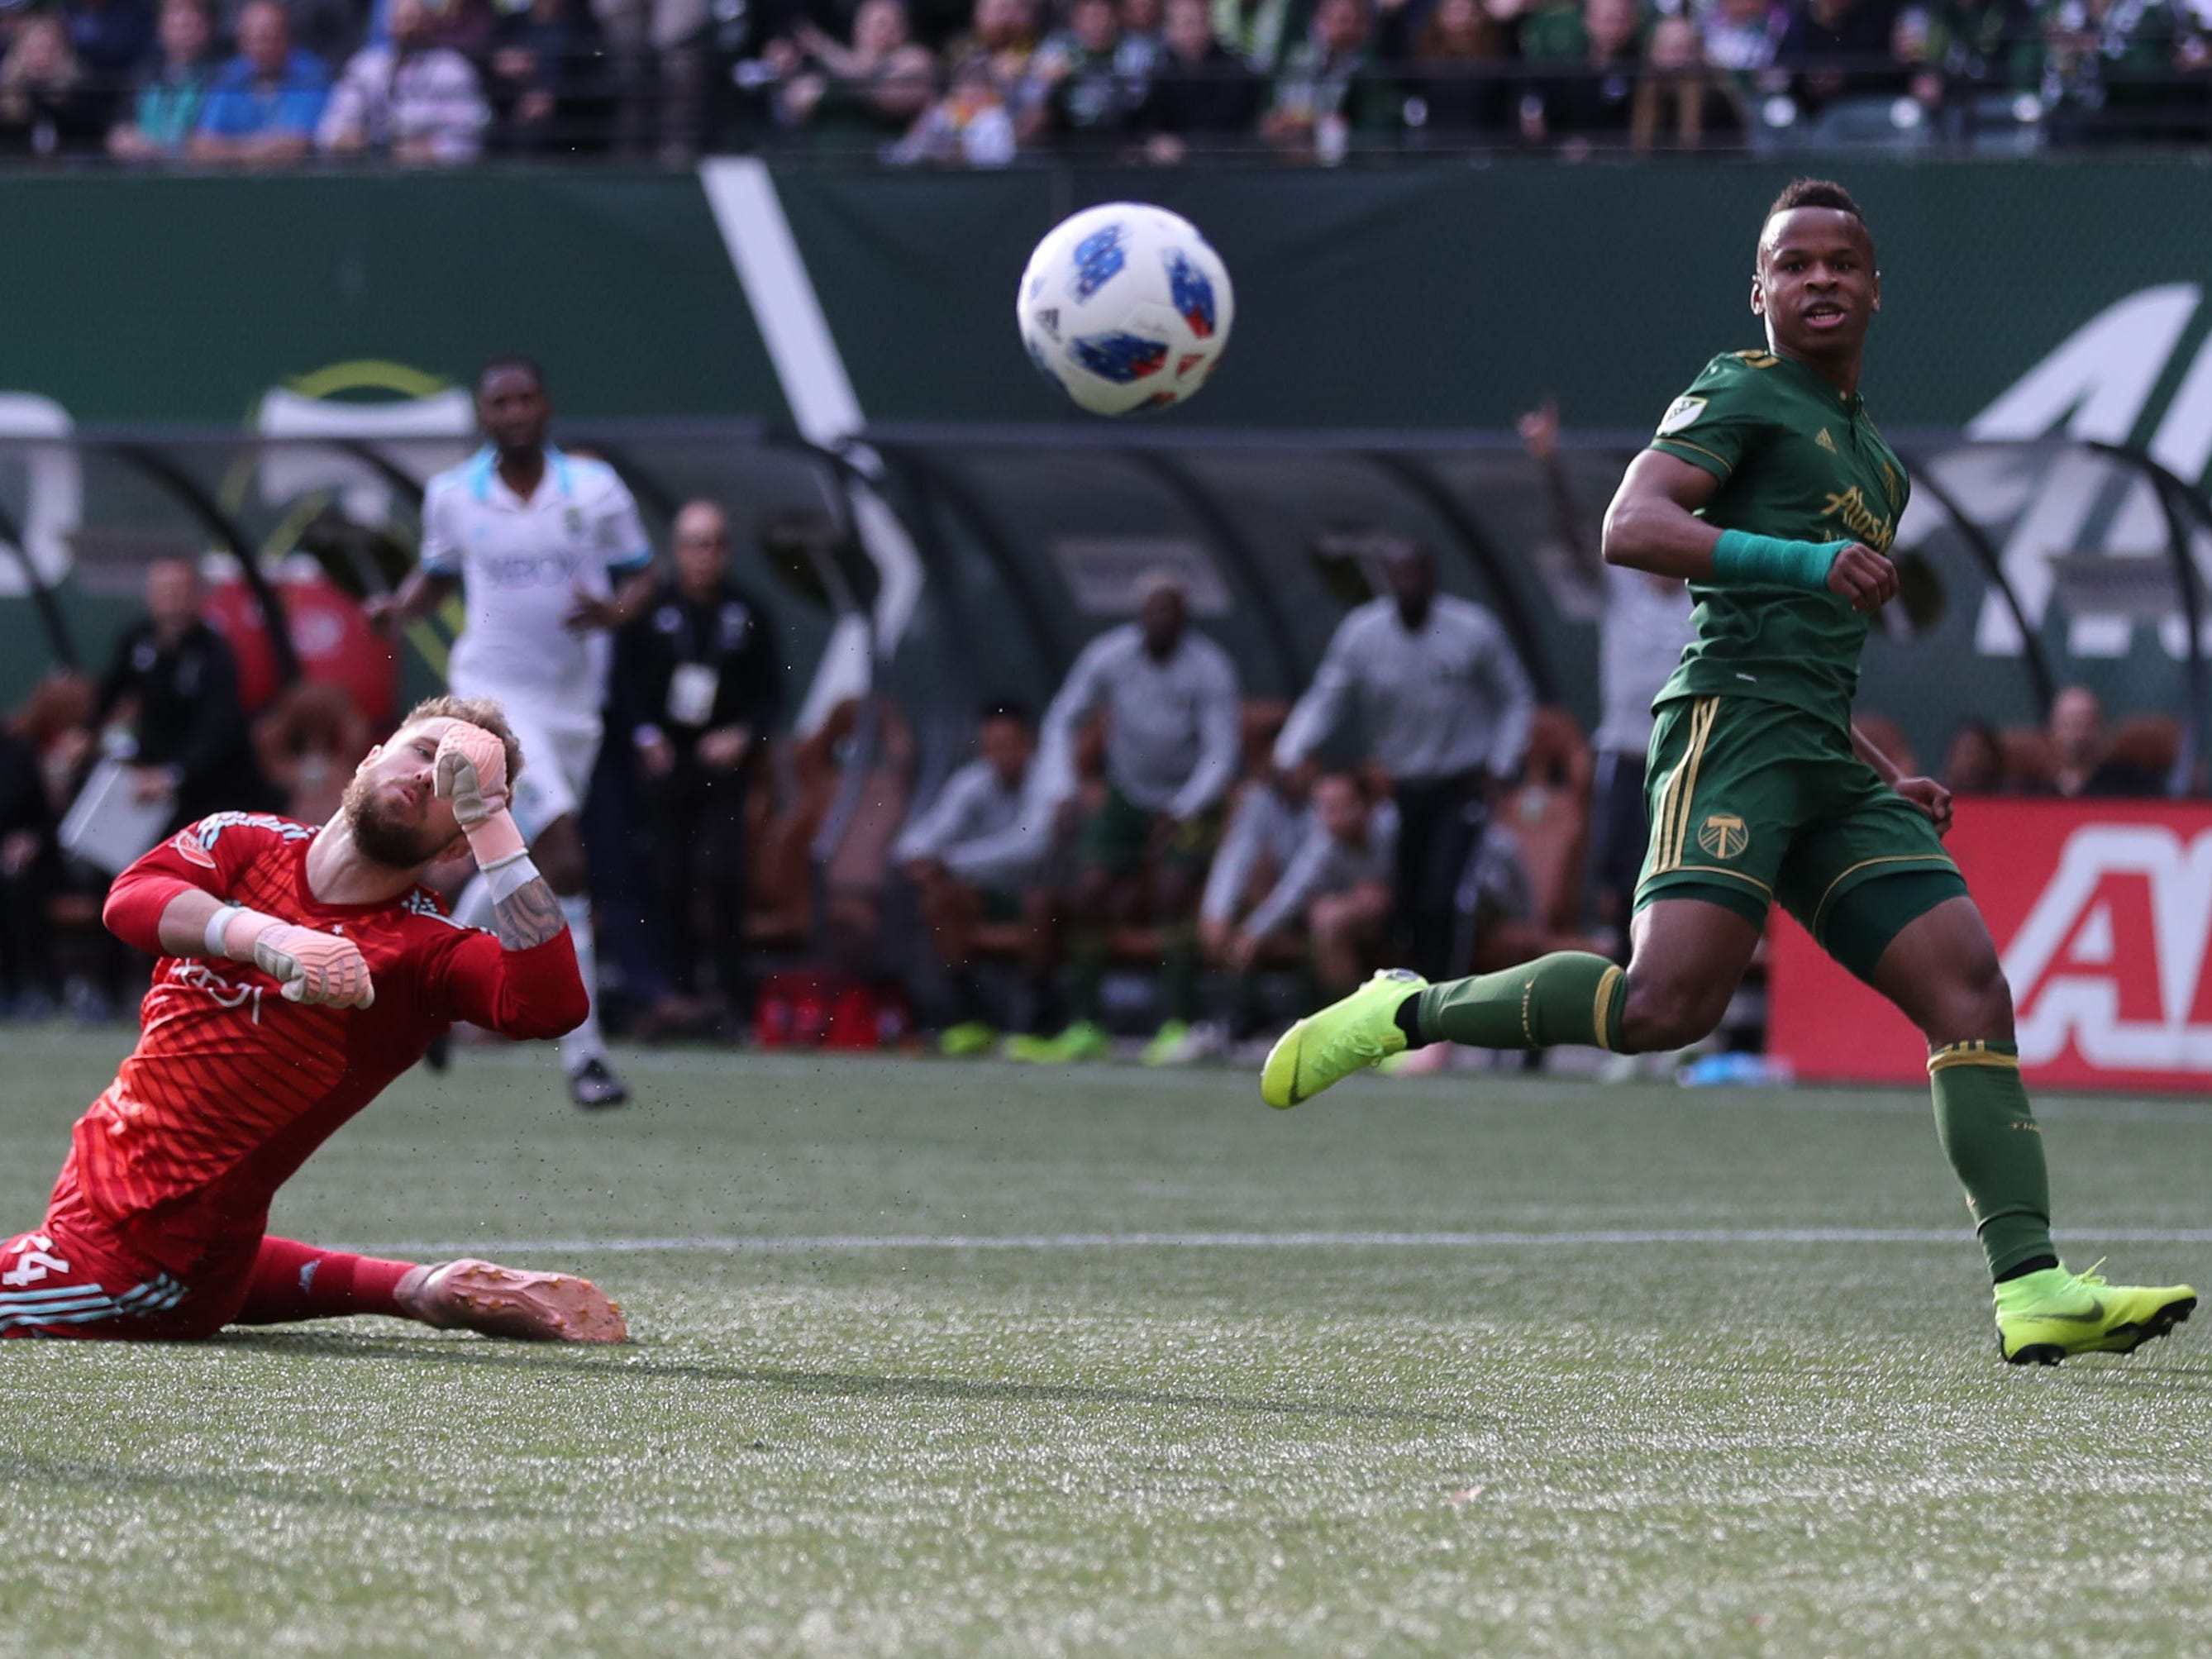 Portland Timbers forward Jeremy Ebobisse kicks the ball over Seattle Sounders goalkeeper Stefan Frei for a goal in the first half at Providence Park.